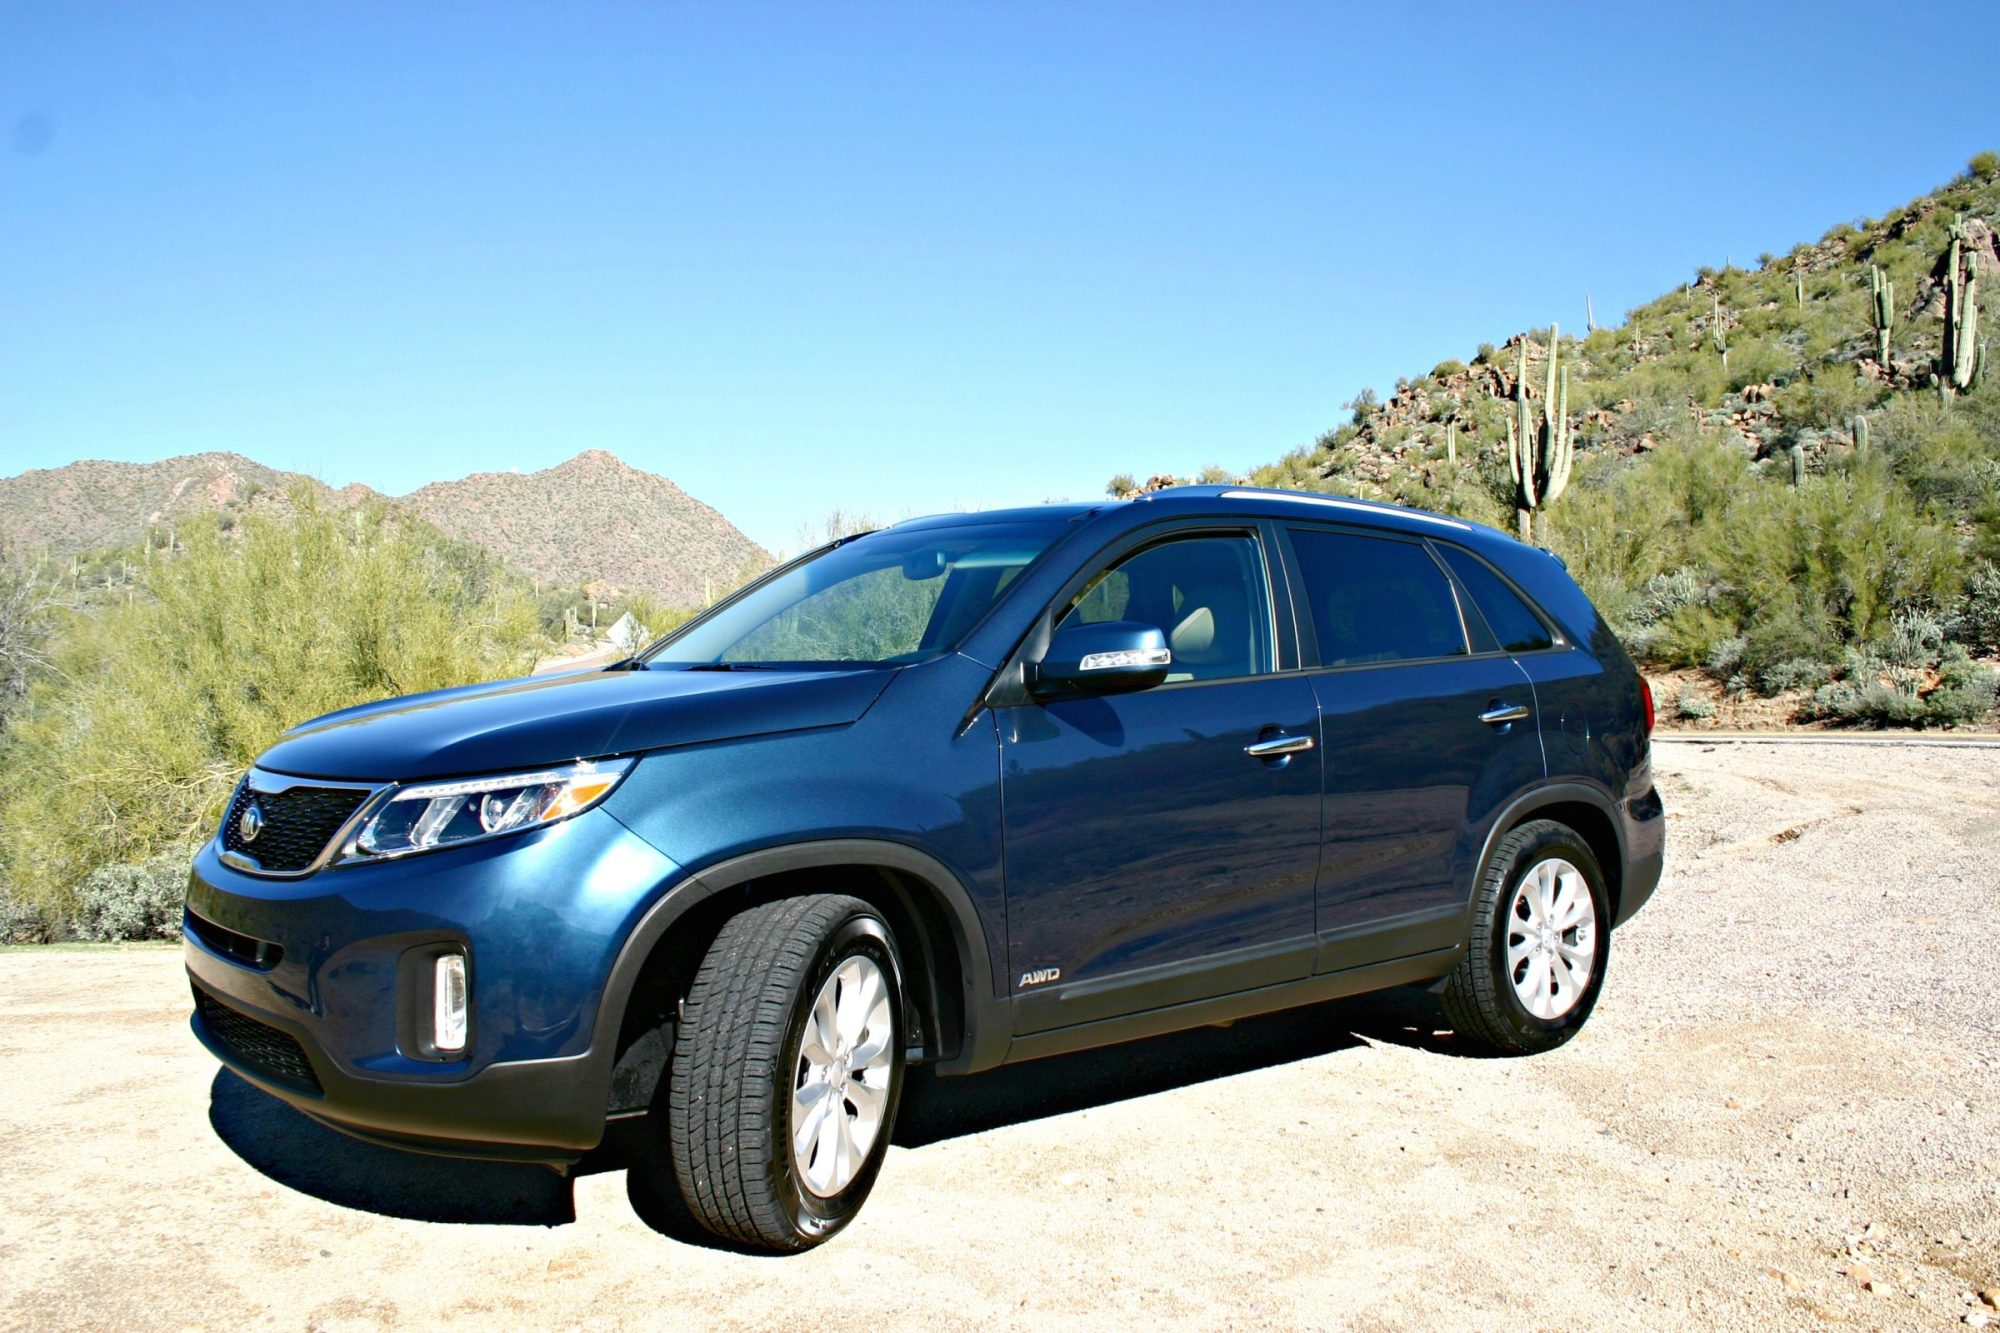 hight resolution of 2014 kia sorento review and first drive